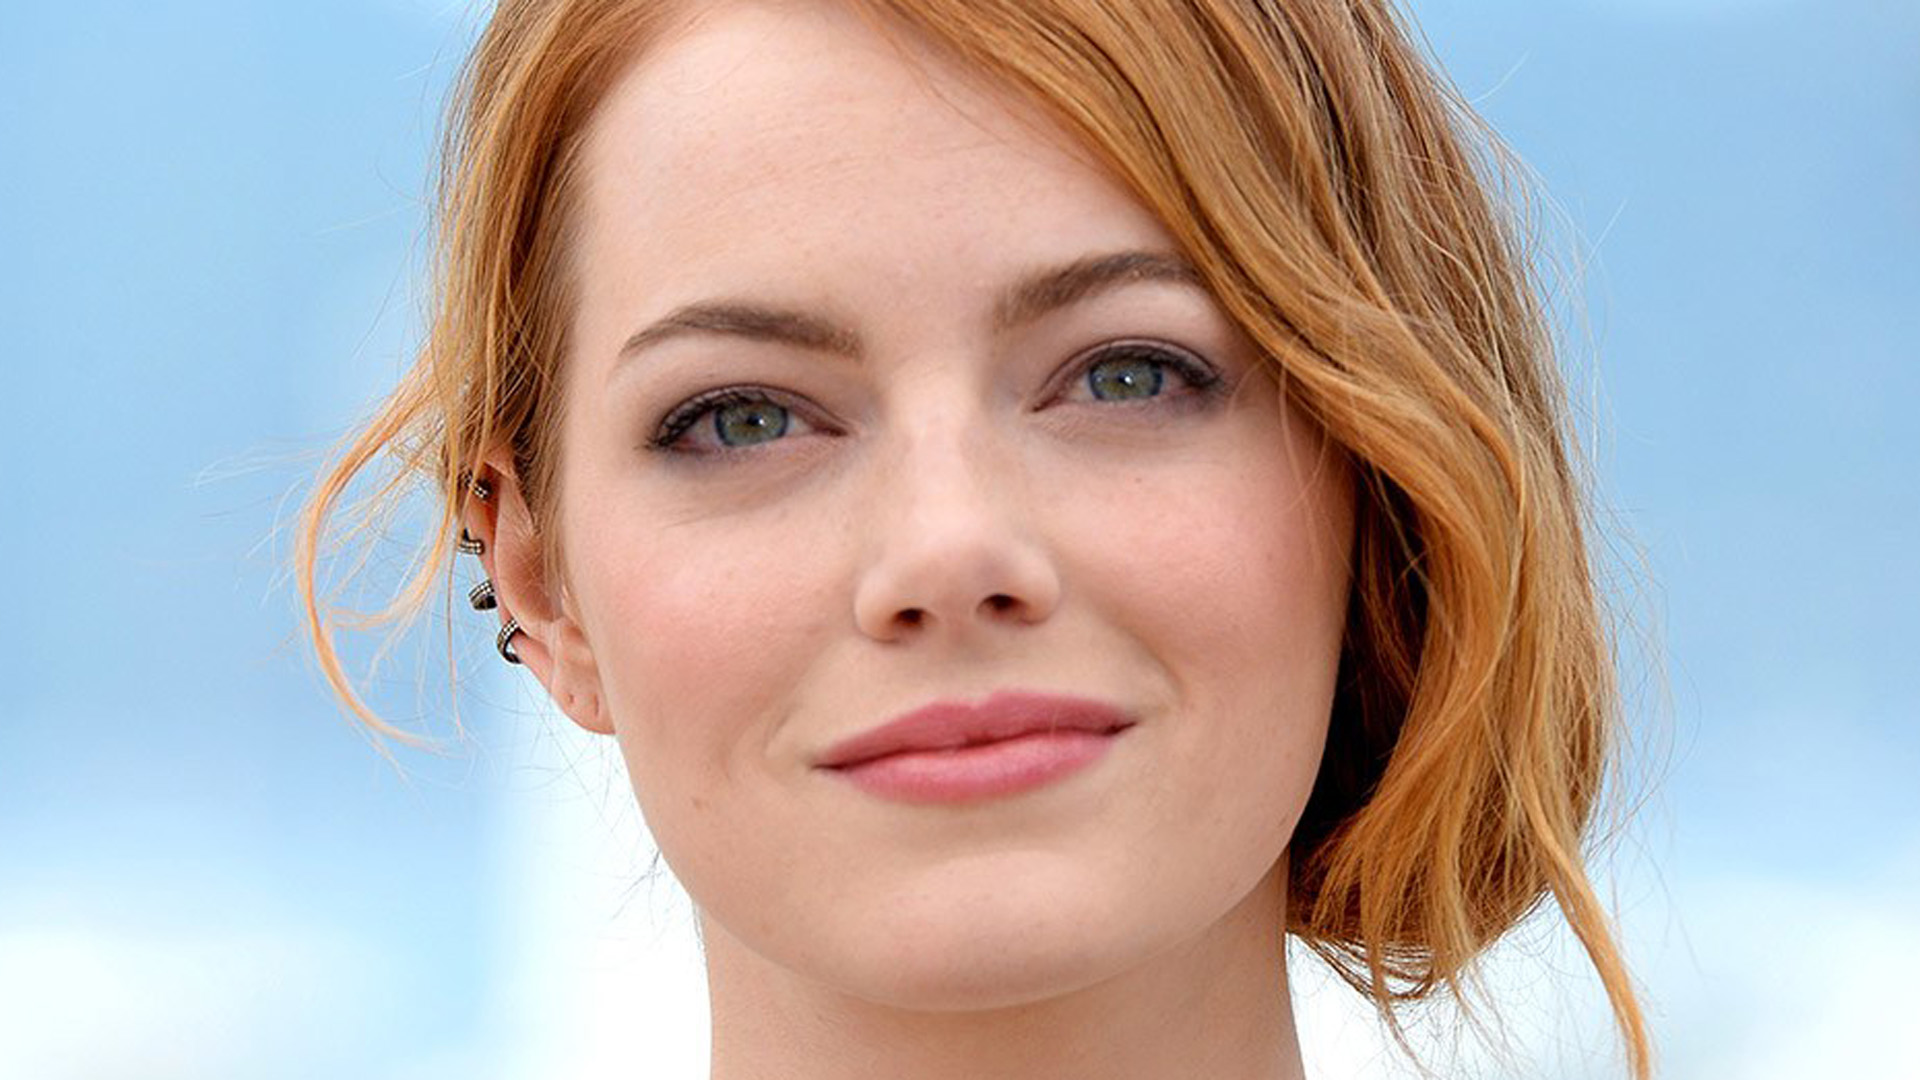 Forum on this topic: Genevieve Townsend, emma-stone/